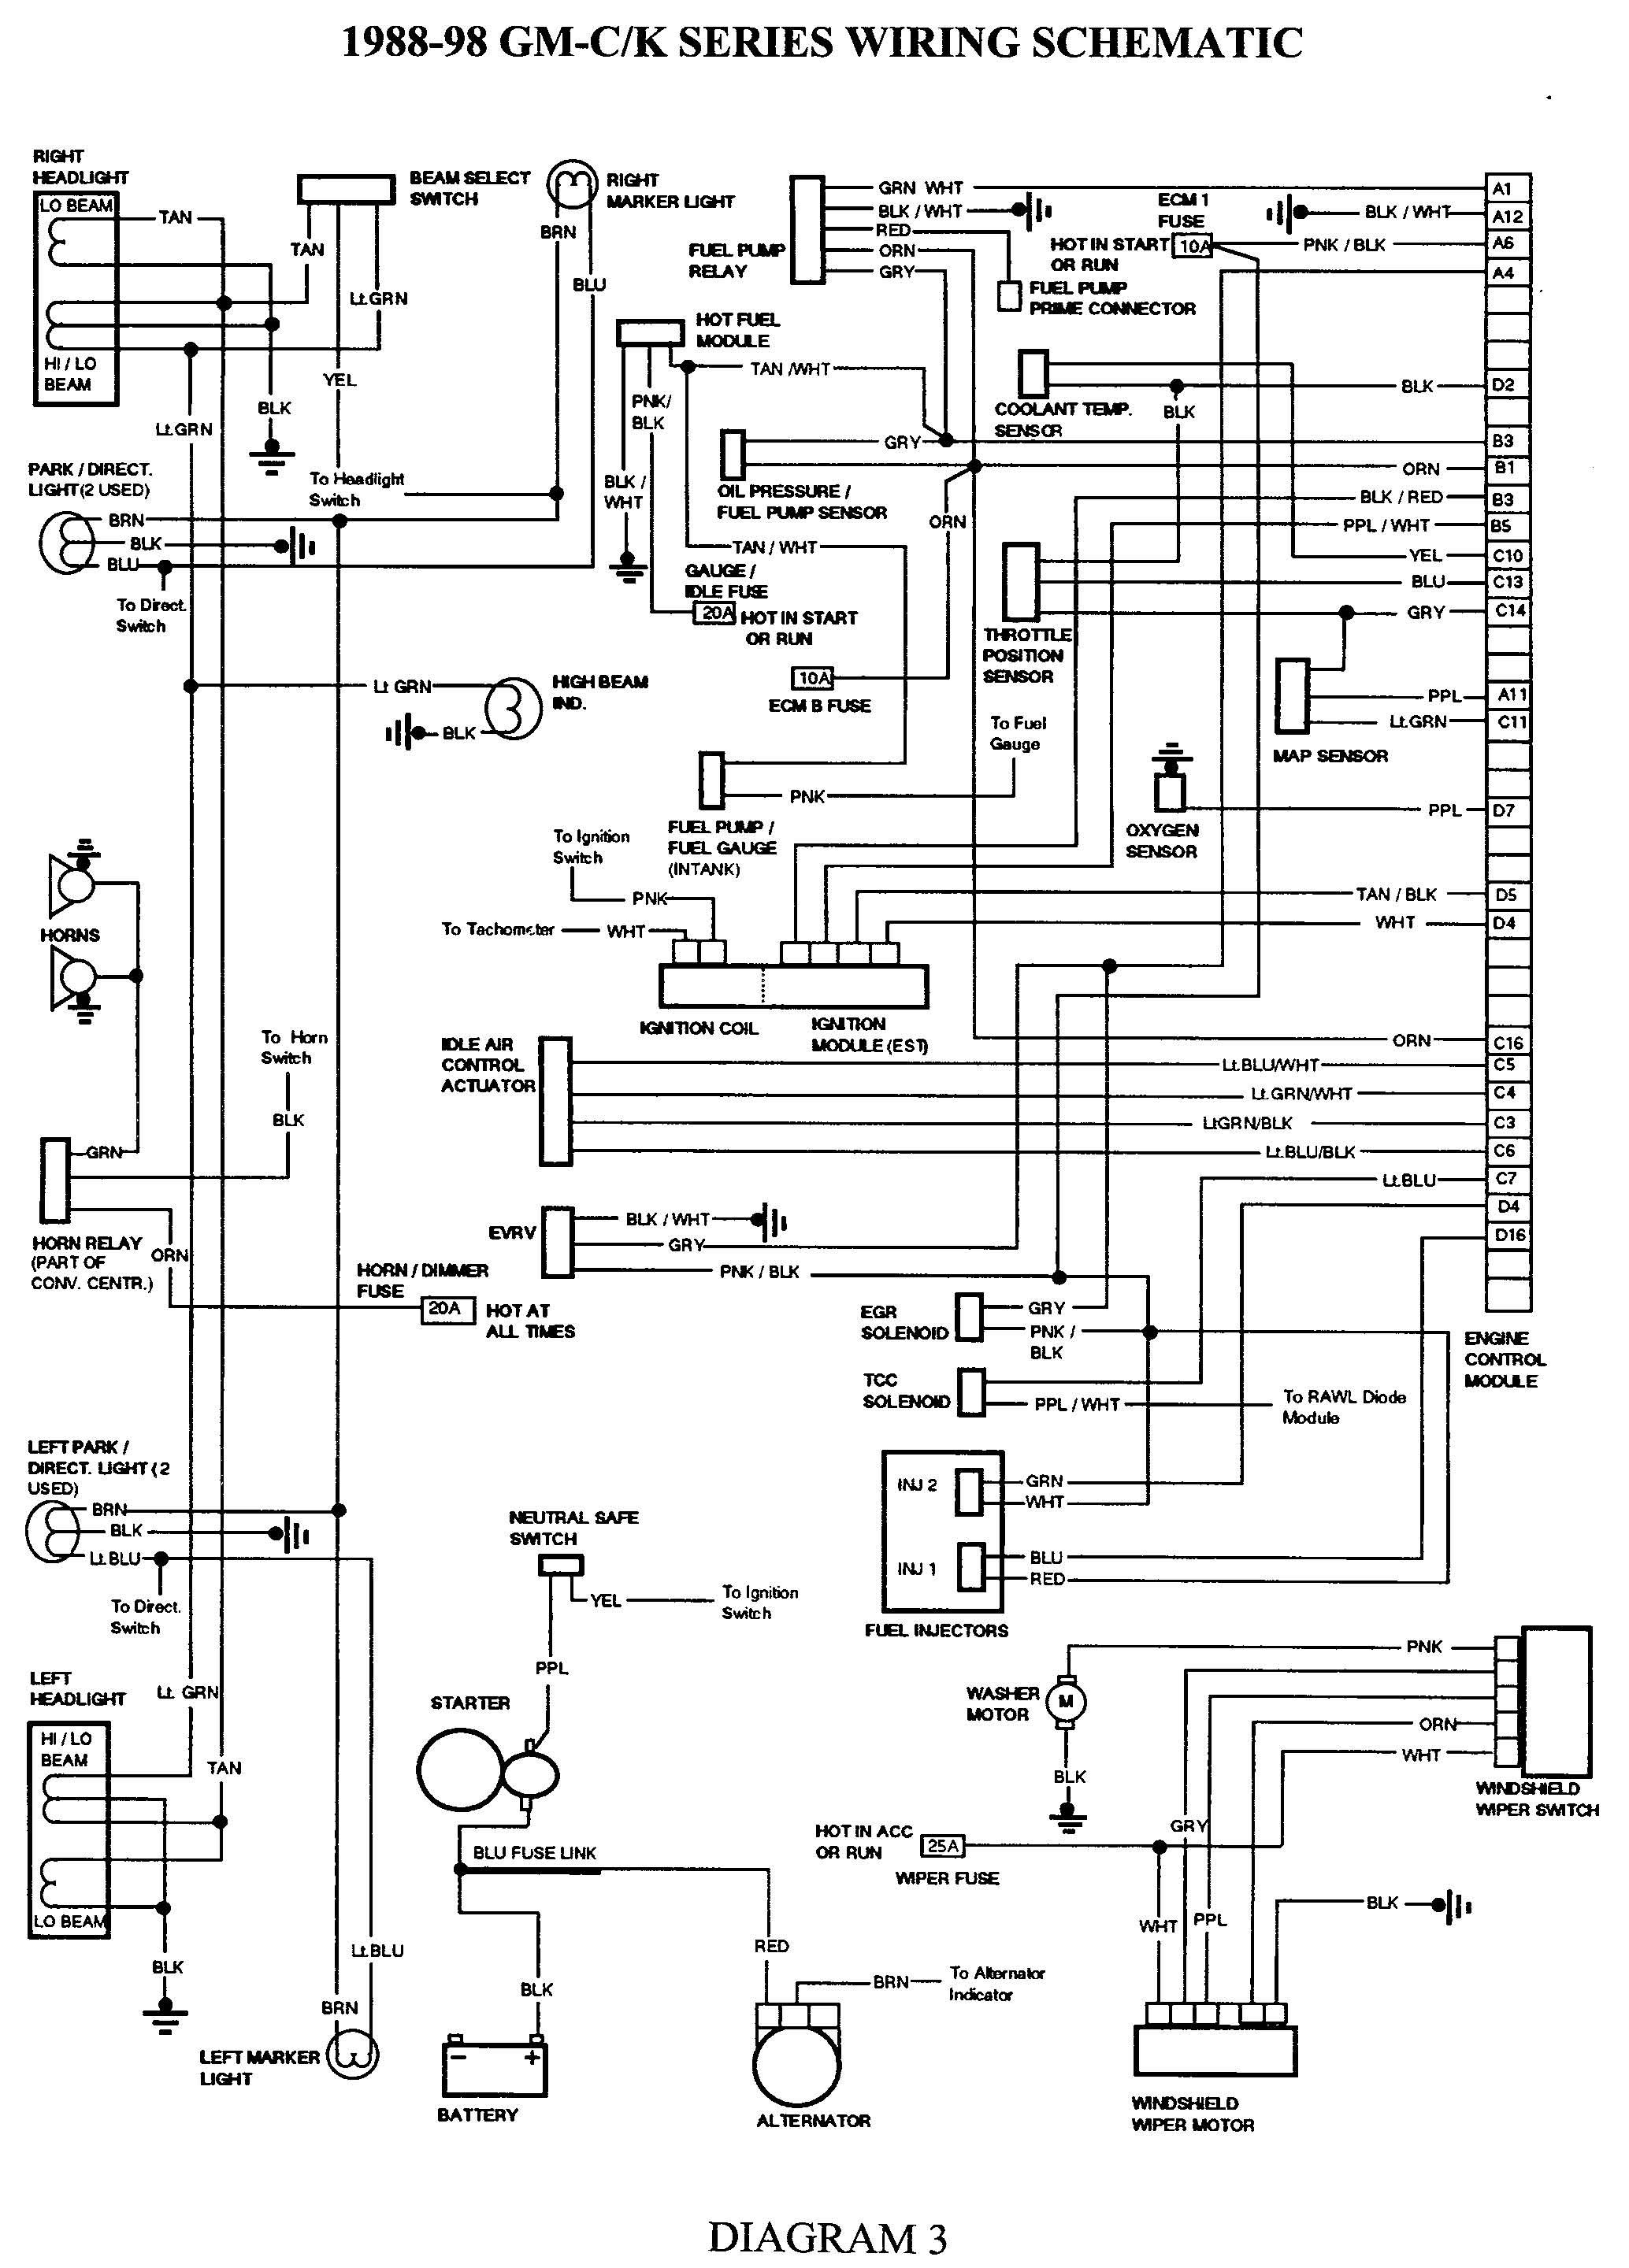 1990 p30 wiring diagram wiring schematics diagram rh mychampagnedaze com  7.4 Mercruiser Engine Diagram 7.4 Mercruiser Engine Diagram